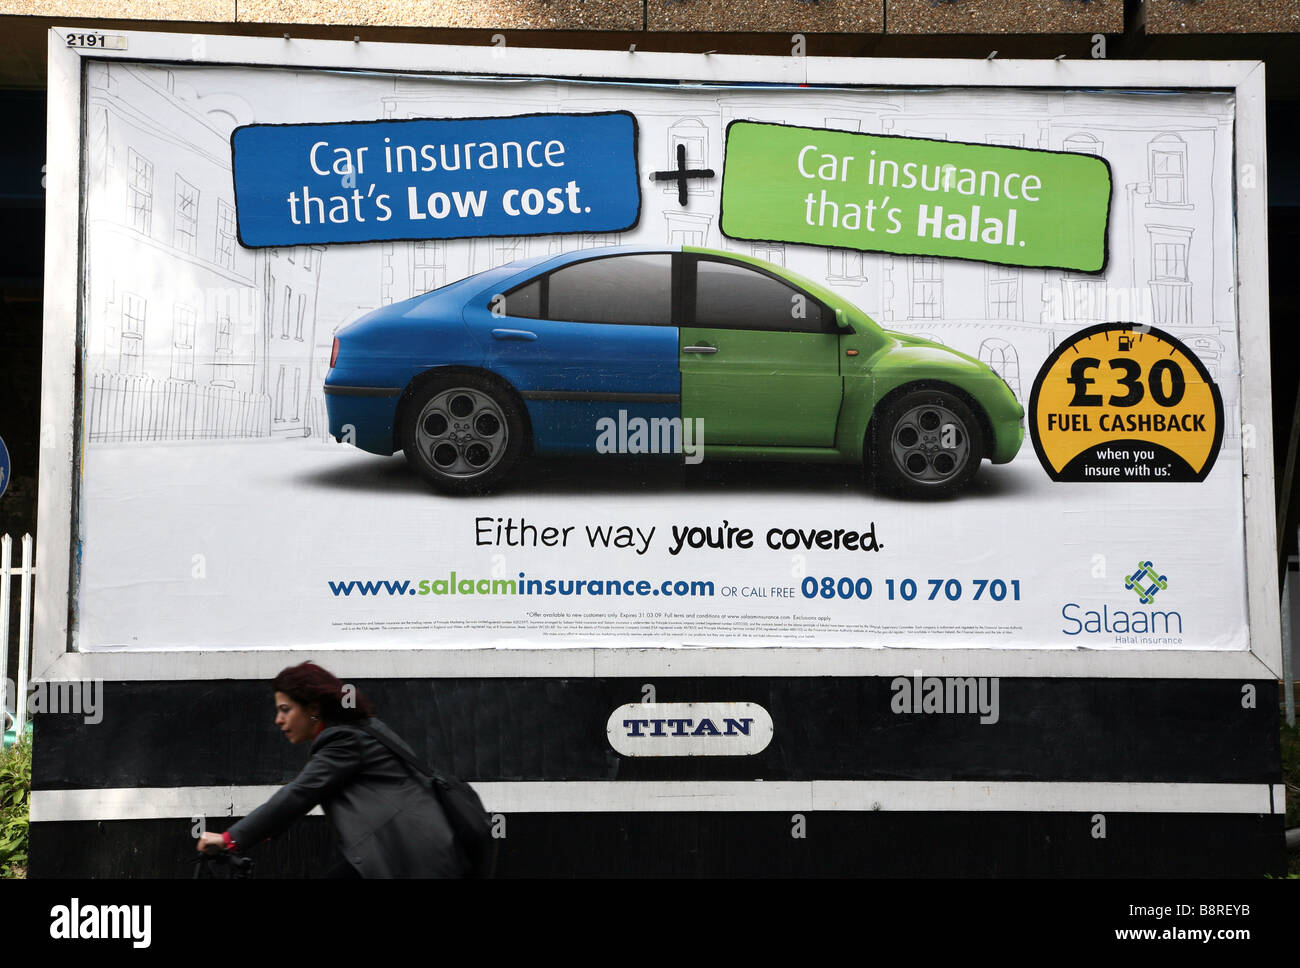 Advert for Halal car insurance, East London - Stock Image